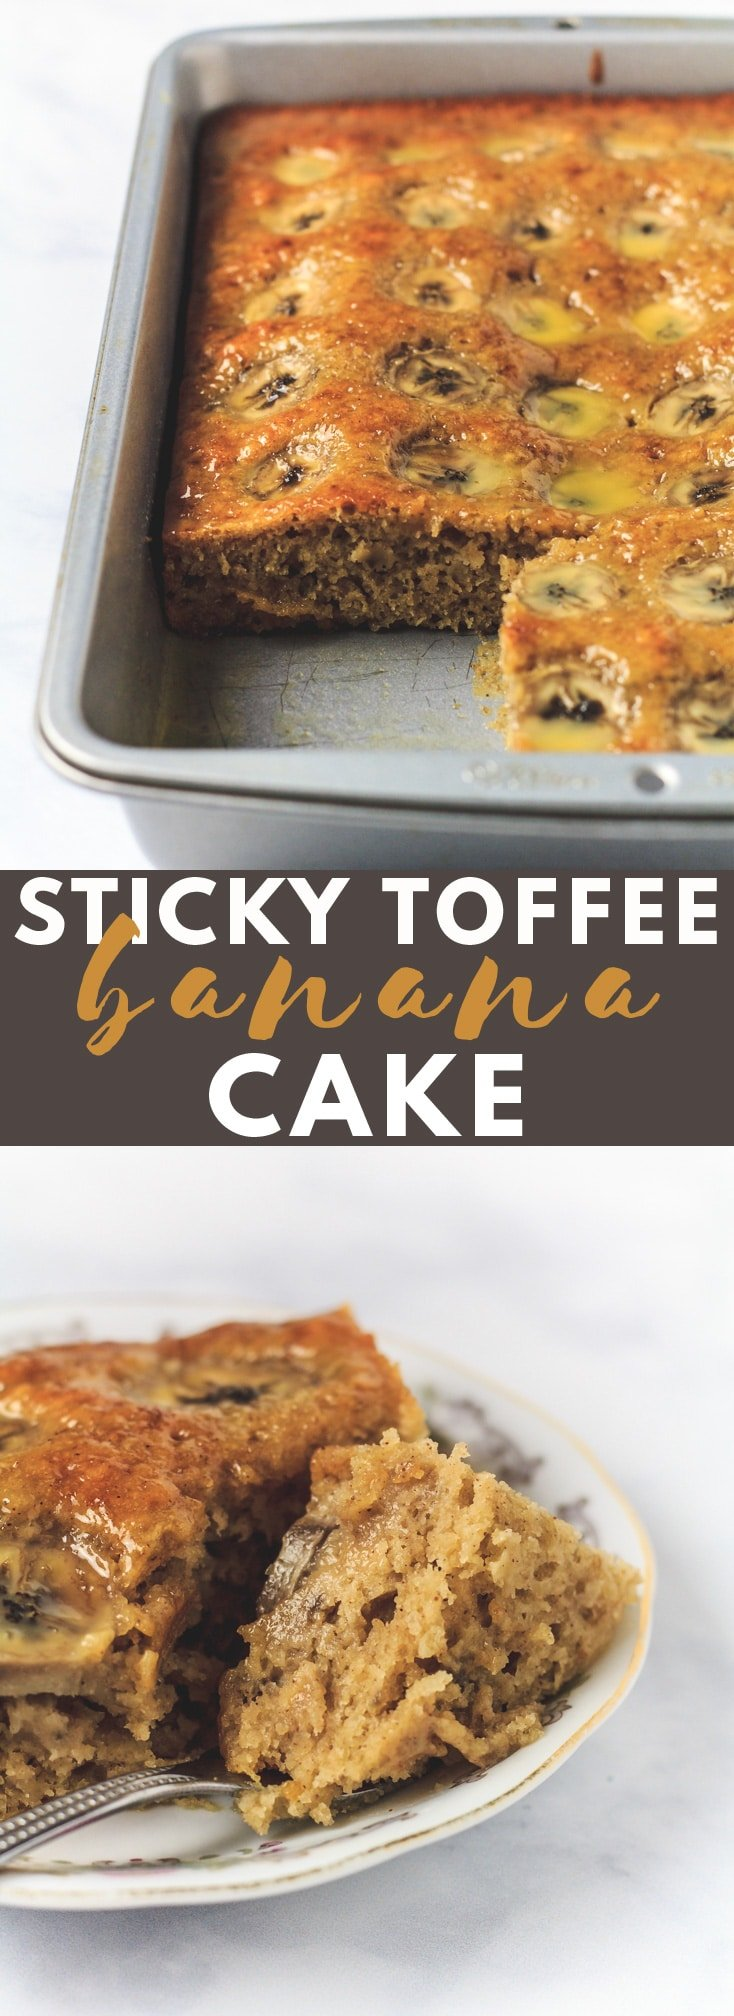 Sticky Toffee Banana Cake - A deliciously moist and fluffy cake that is loaded with banana flavour, and topped with a sticky toffee glaze and banana slices! #bananacake